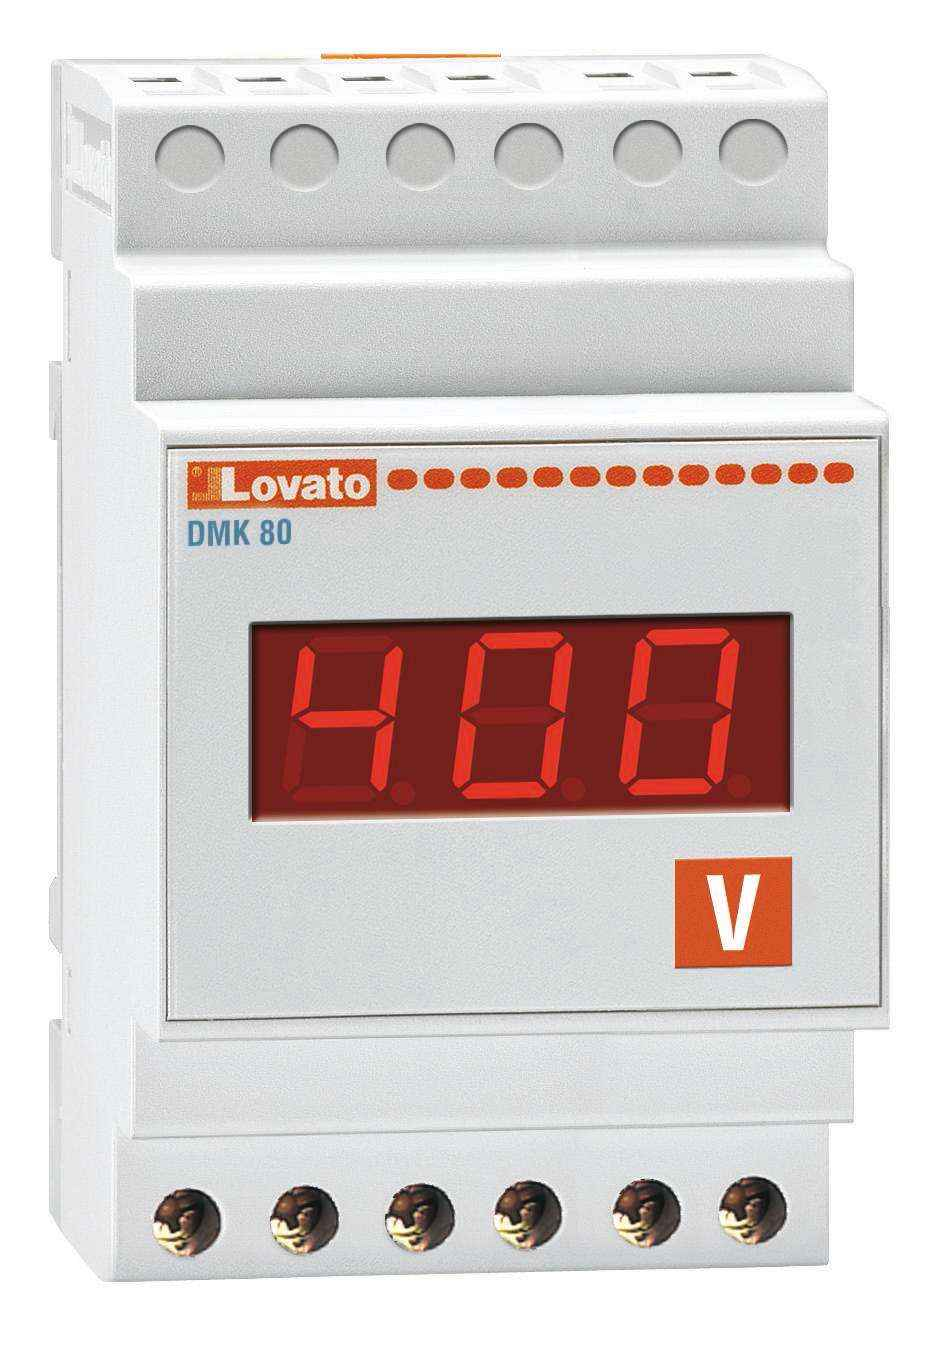 DMK 80-84 / R1 Digital Measuring Instruments